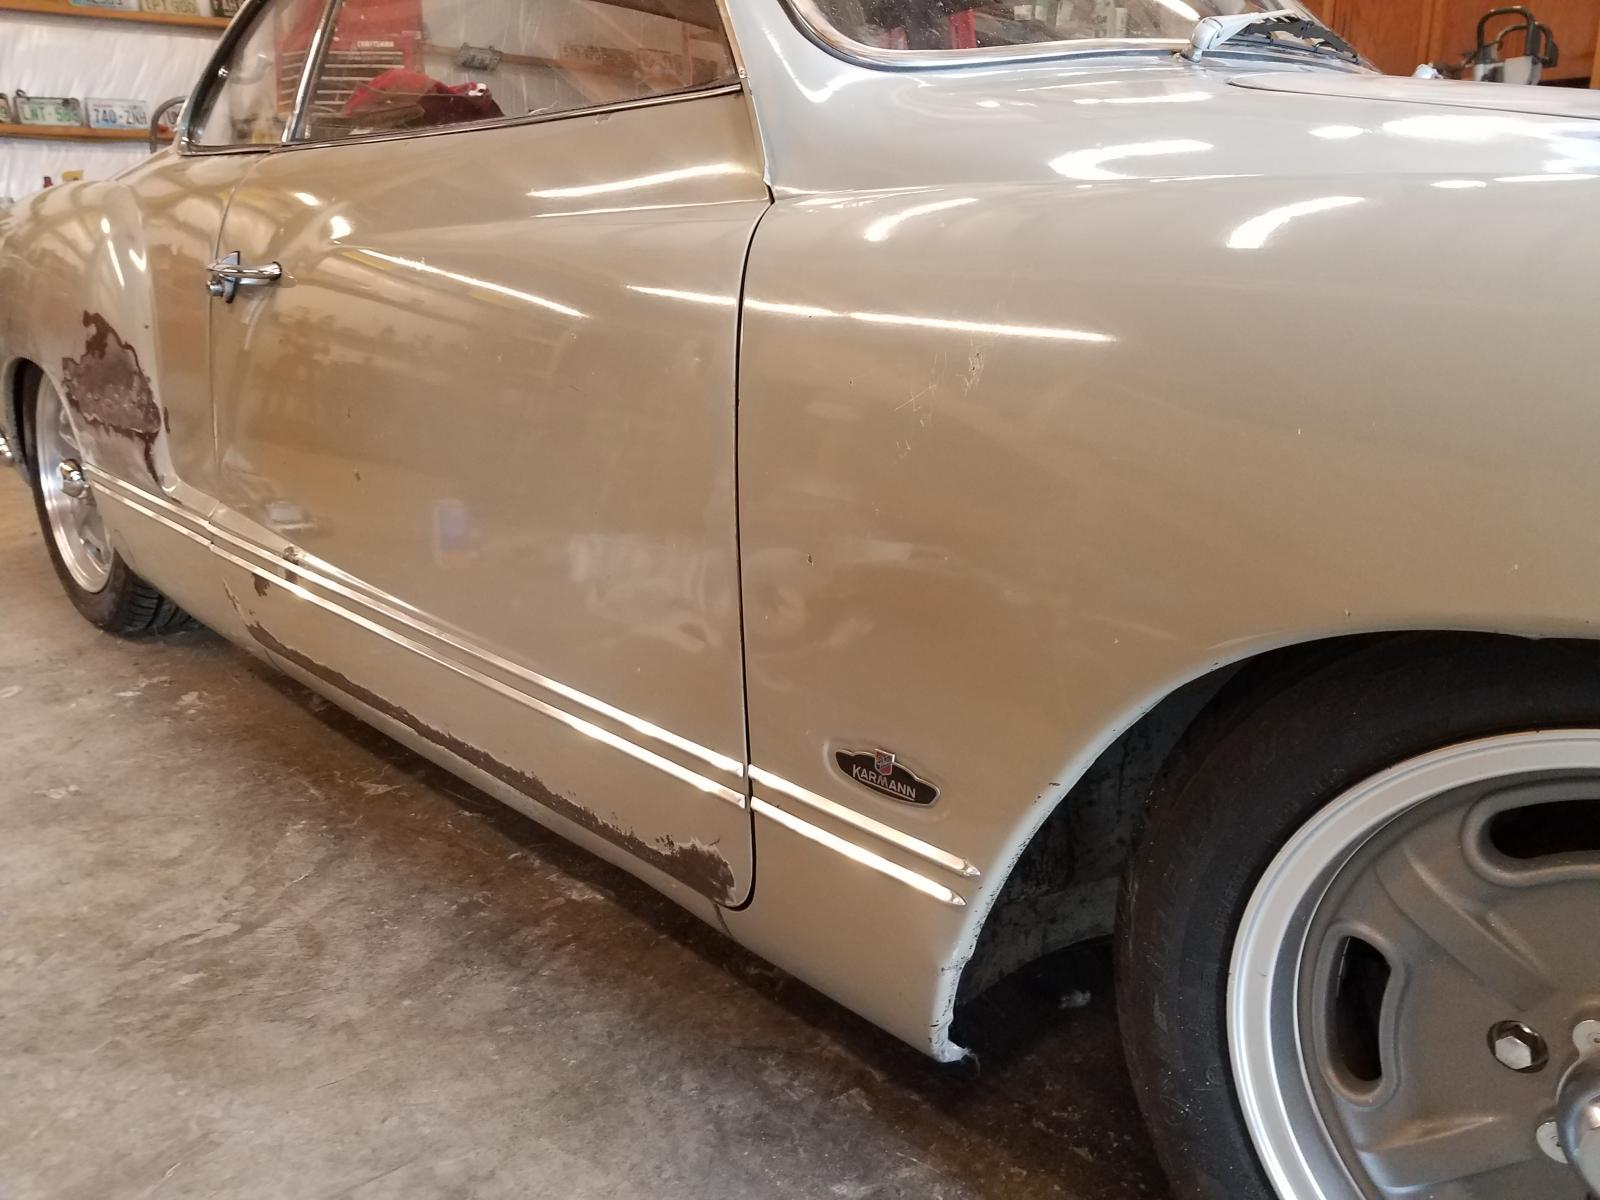 Ghia View Topic Repro Side Trim A Case Study Electric Karmann In Los Angeles Image May Have Been Reduced Size Click To Fullscreen